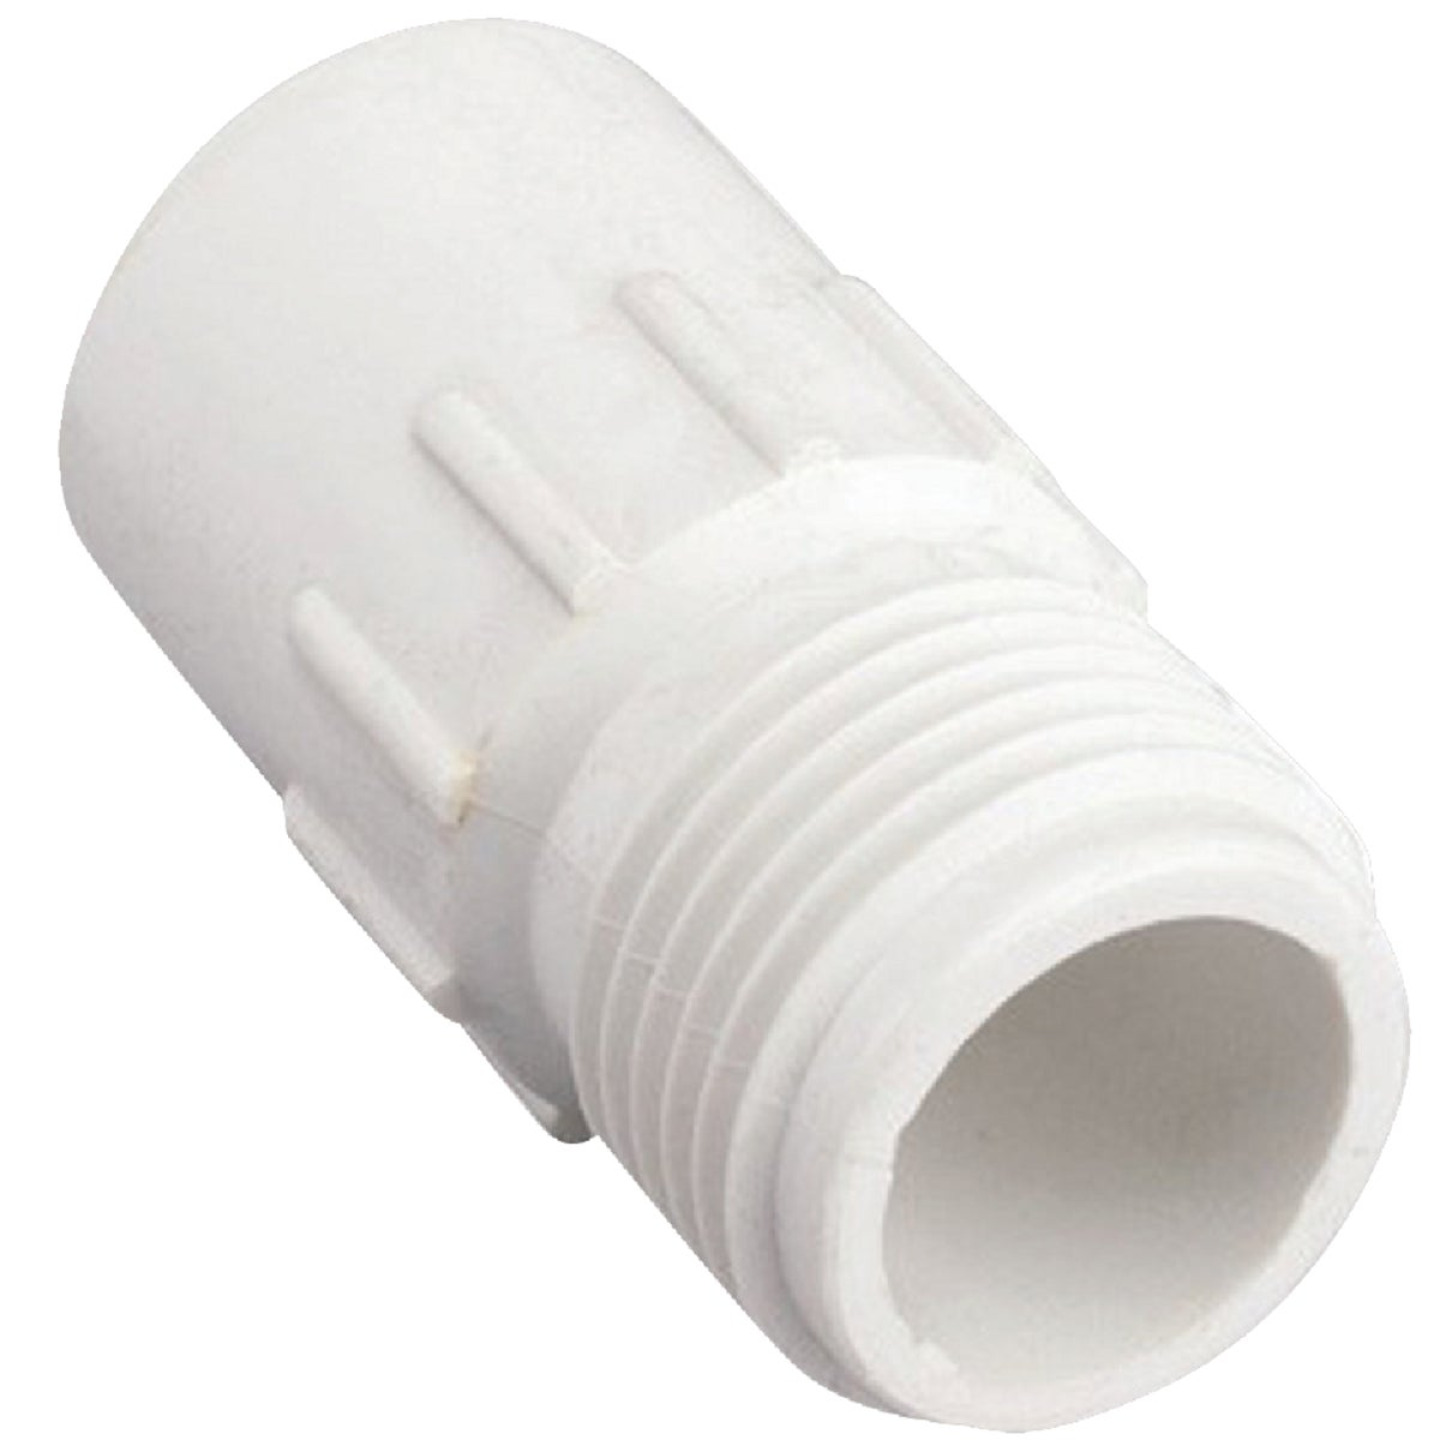 Orbit 3/4 In. MHT x 1/2 In. Slip PVC Hose Adapter Image 1